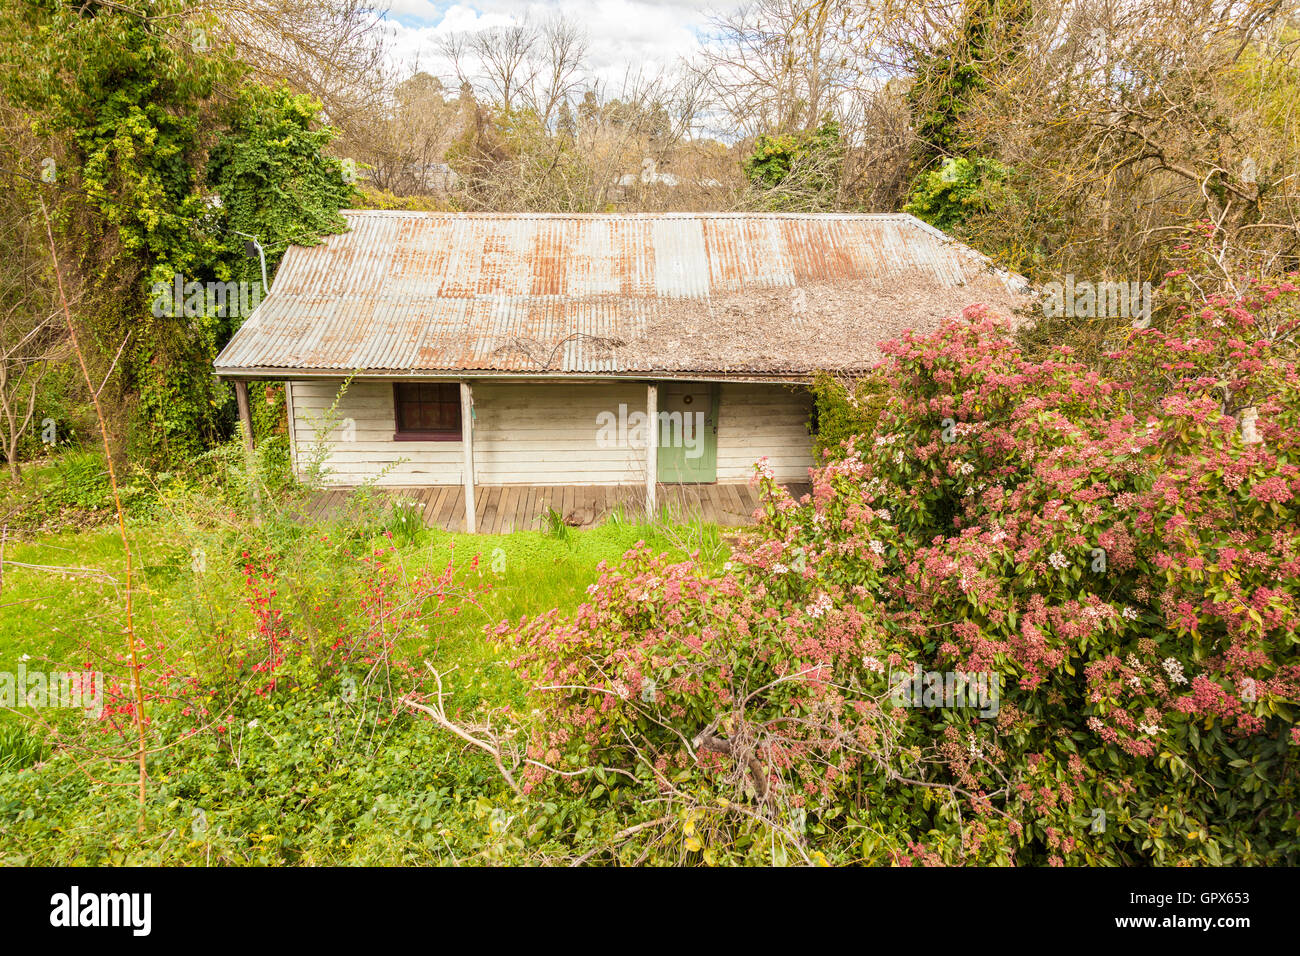 shabby timber dwelling, with iron roof, shaded veranda, overgrown shrubs and grass, aged, decaying family house. - Stock Image